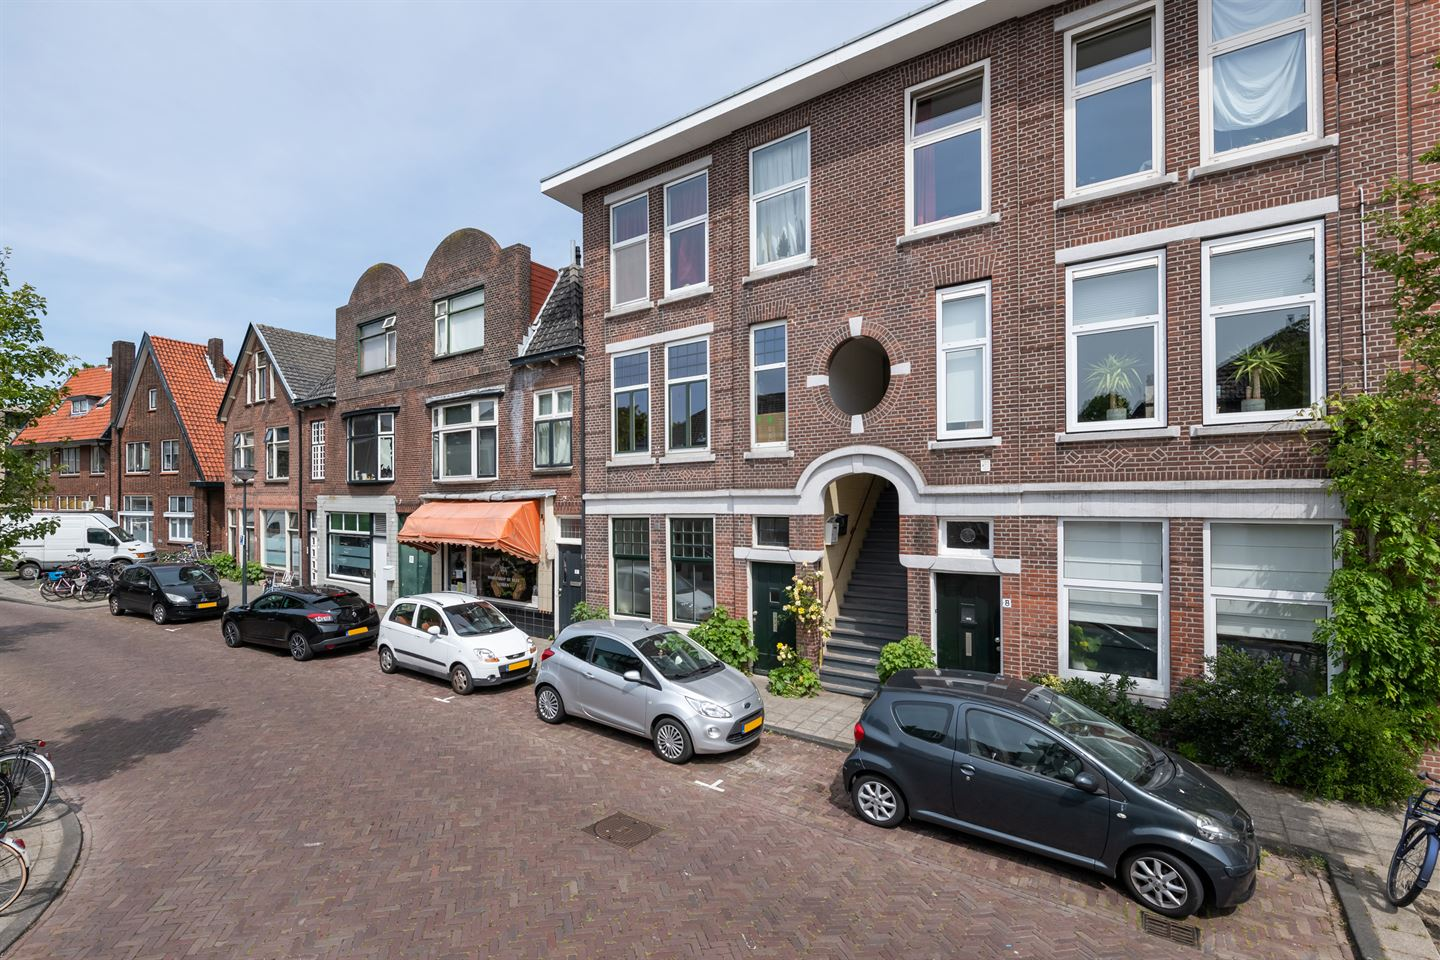 Appartement Funda Appartement Te Koop De Genestetstraat 4 B 2321 Xm Leiden Funda